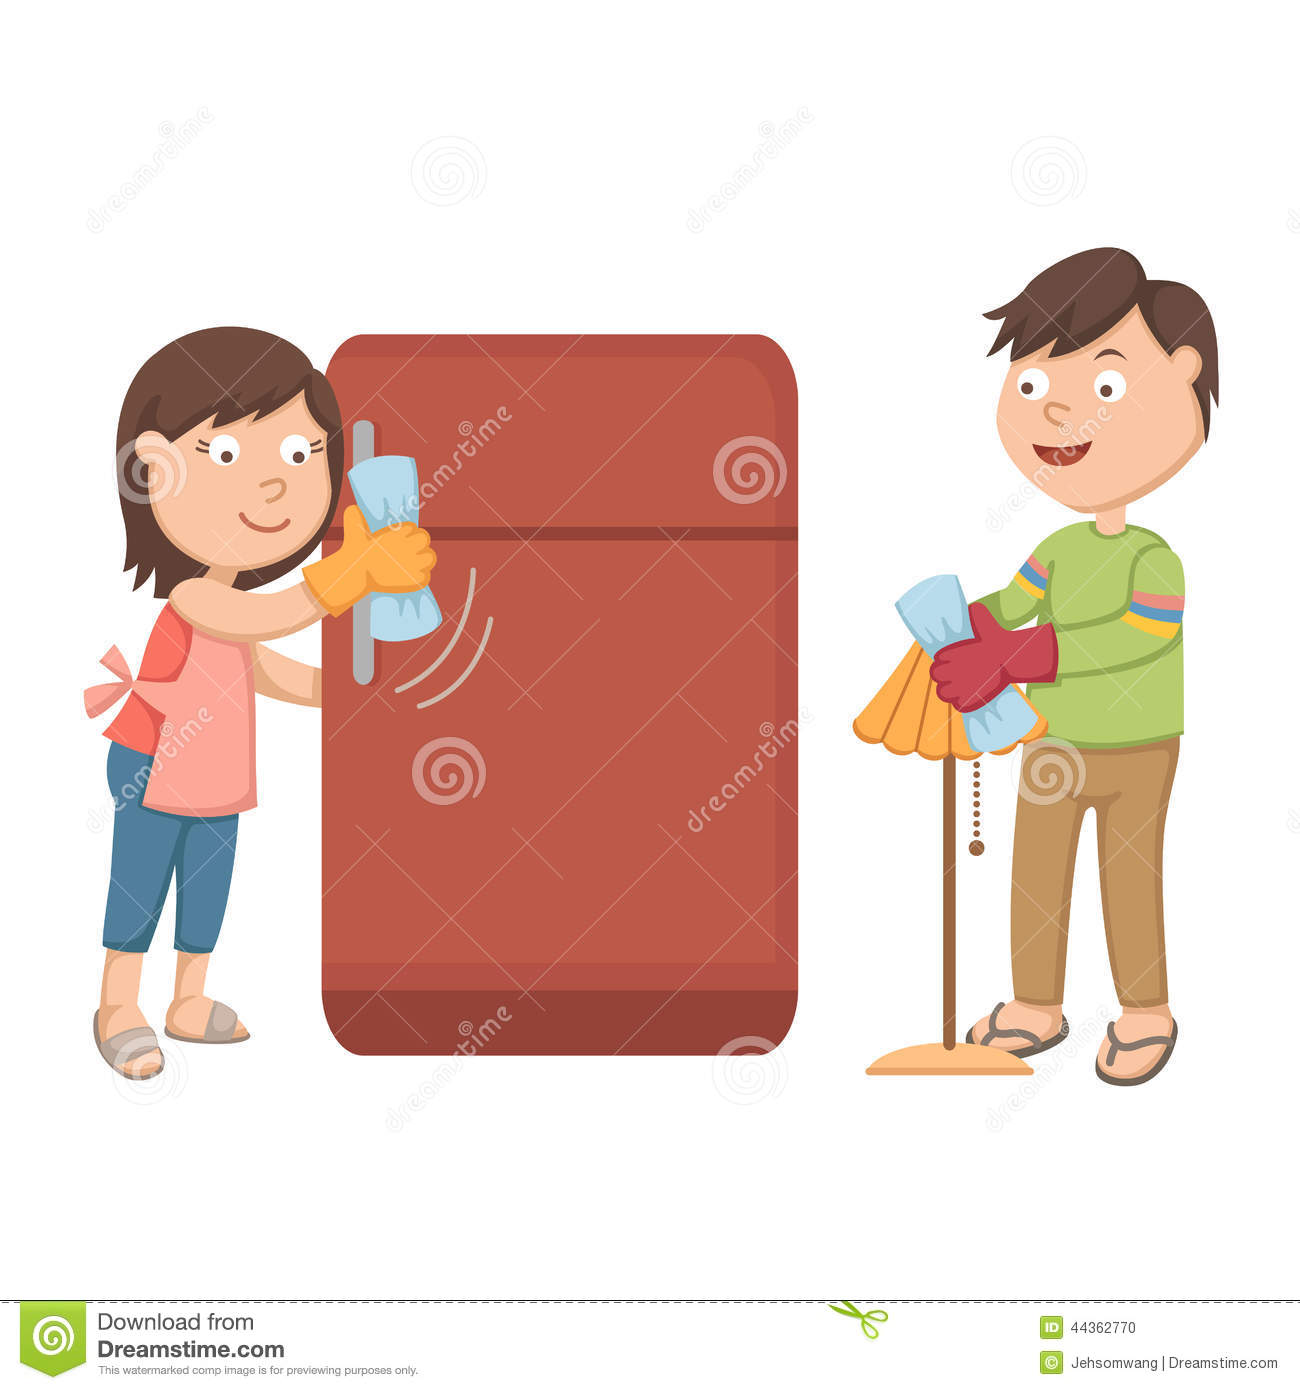 cleaning fridge clipart - photo #33